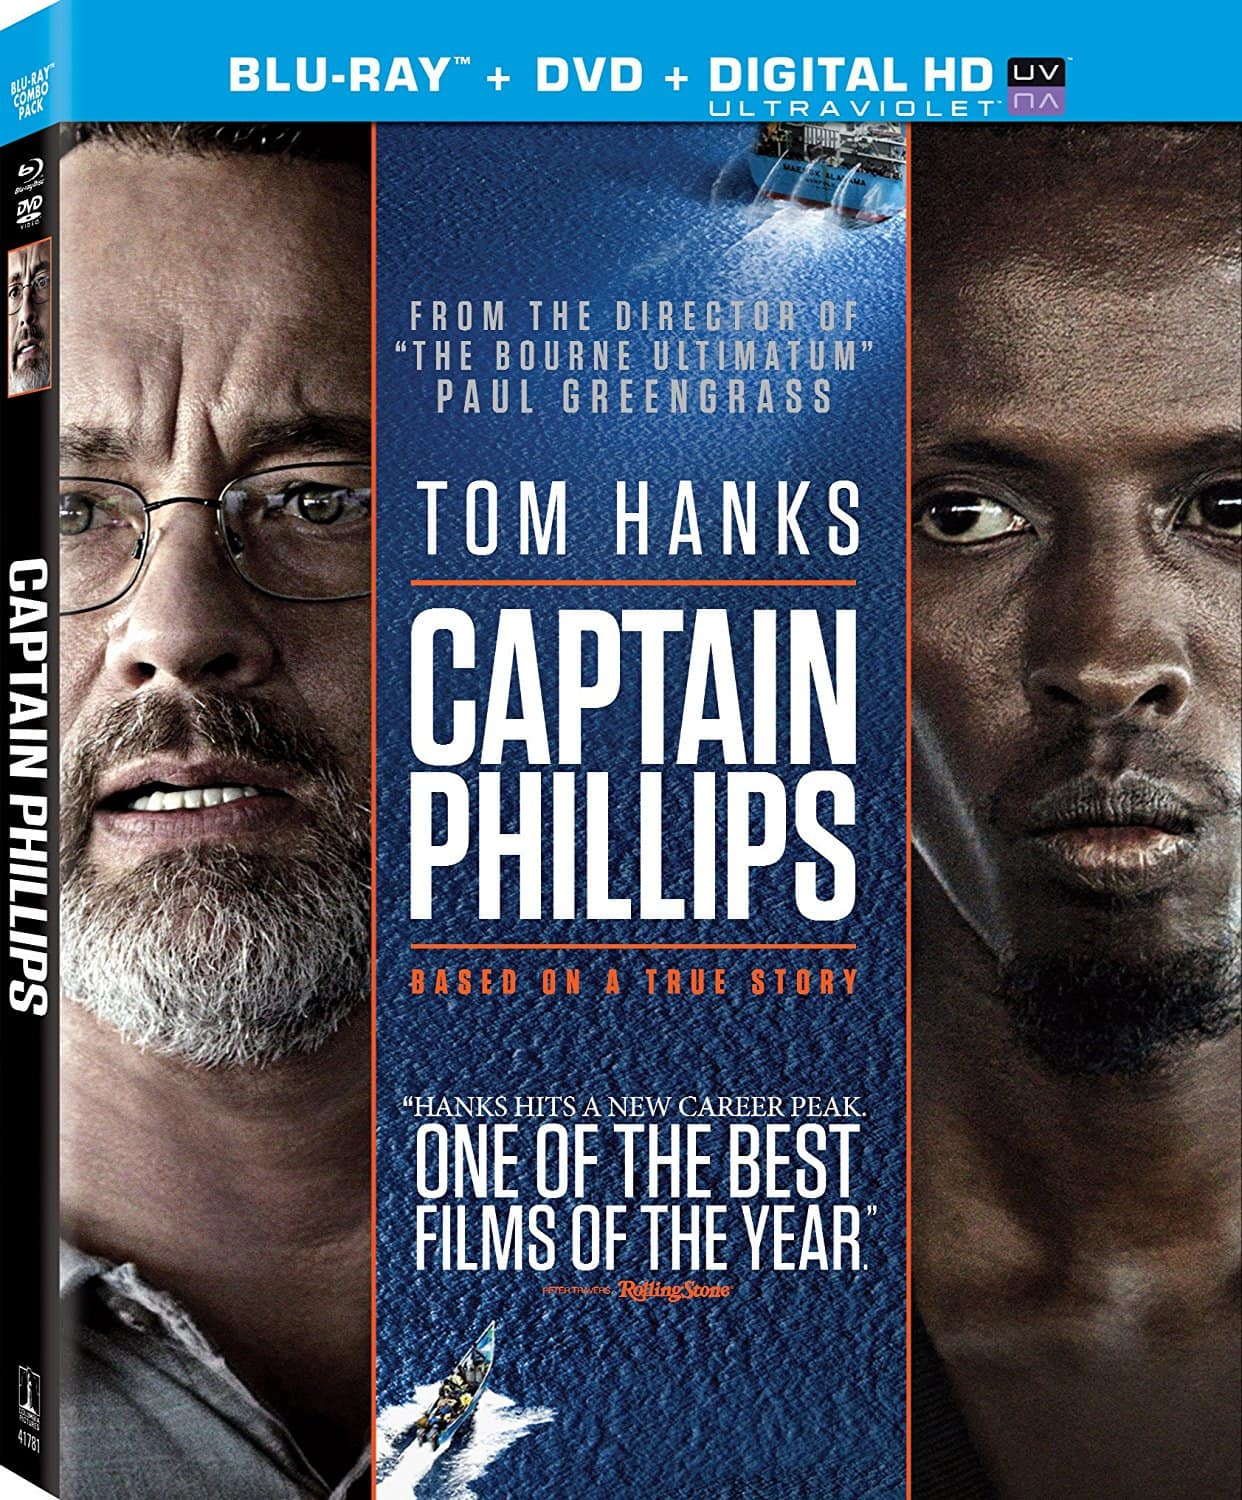 Captain Phillips (Blu-Ray + DVD + UV Digital) or Stand by Me: 25th Anniversary Edition (Blu-Ray) $4.99 via Amazon